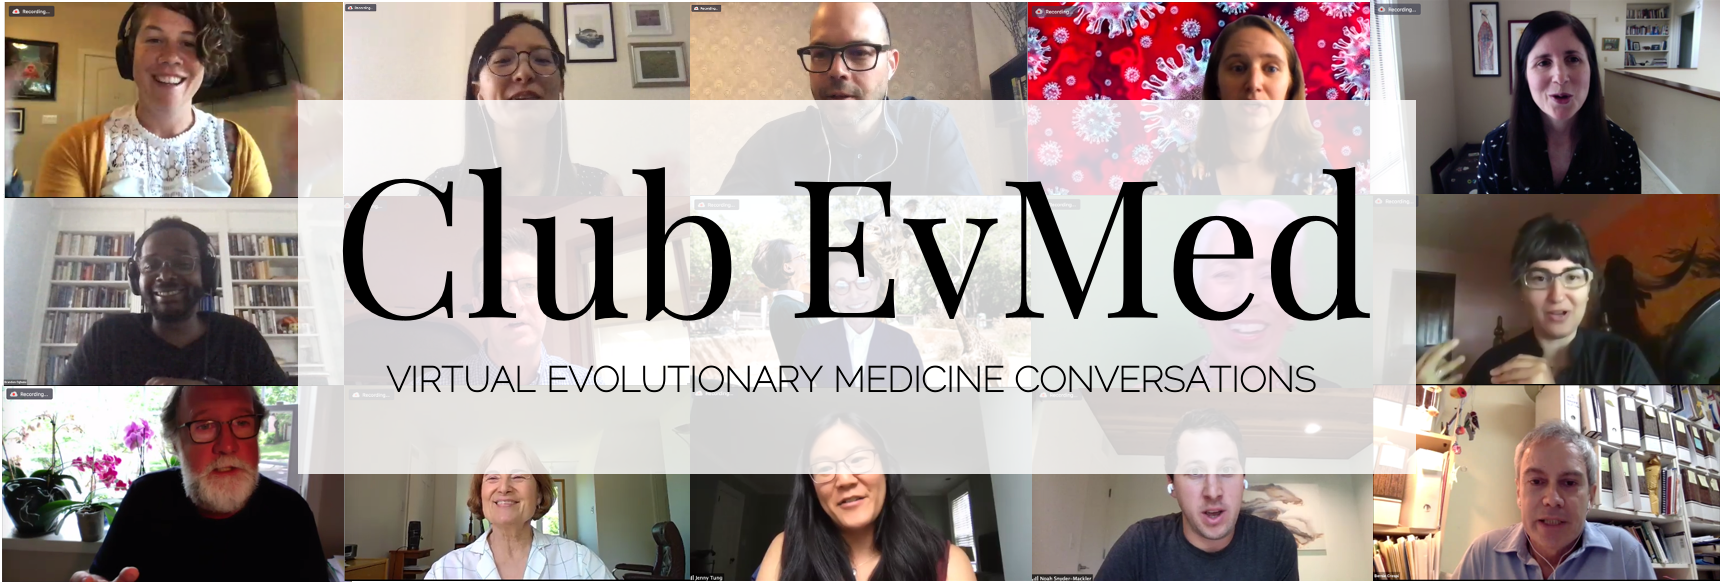 Club EvMed logo over a collage of people in Zoom meetings